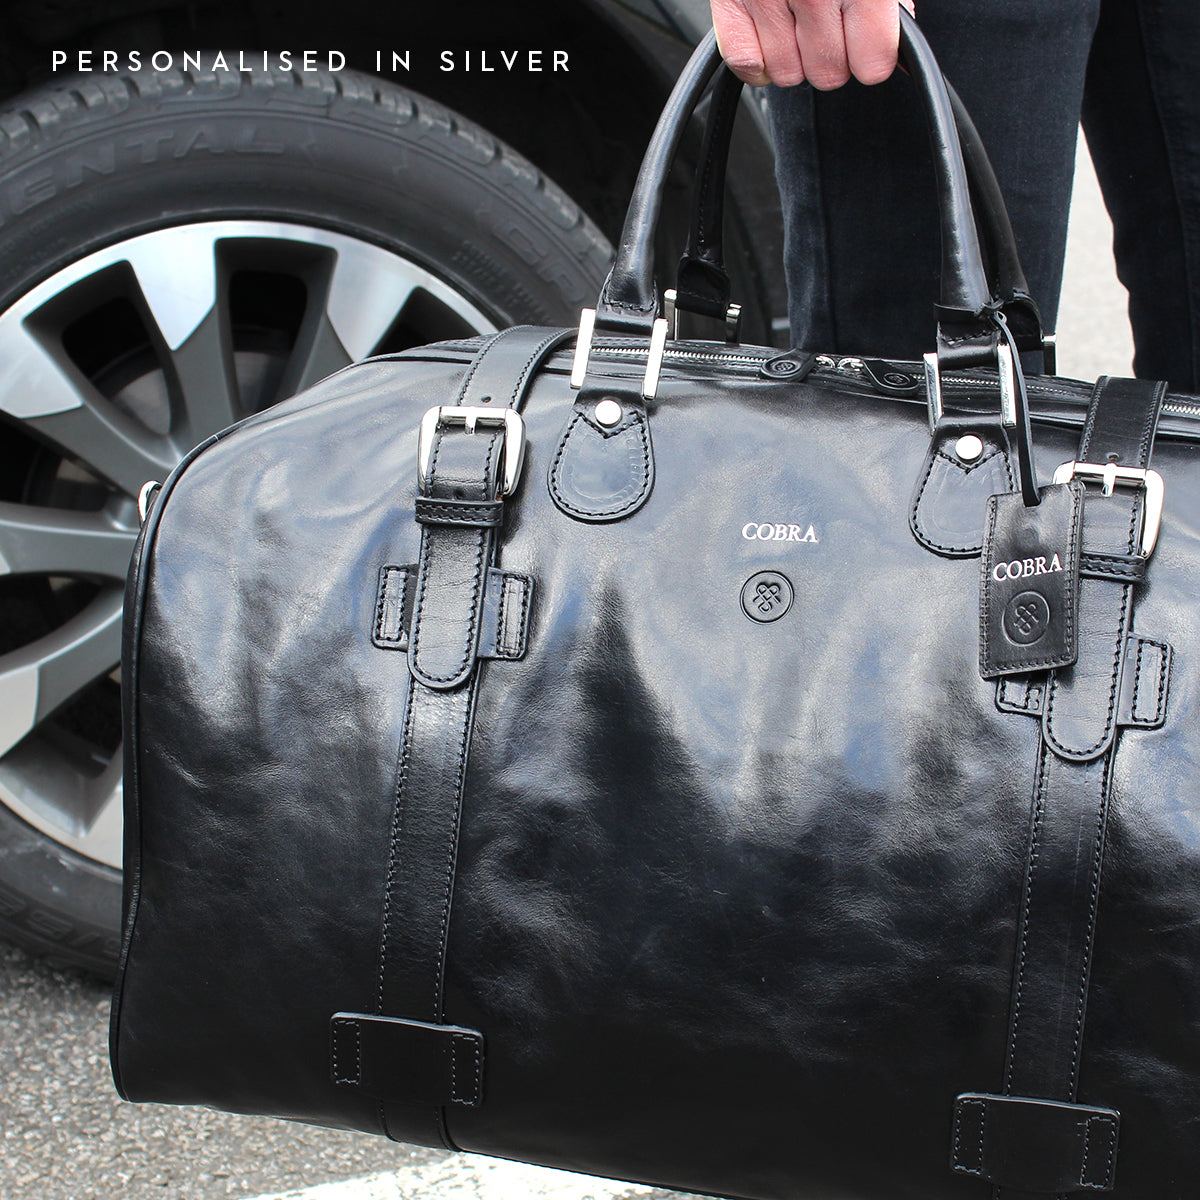 Image 8 of the Extra Large 'Flero' Dark Chocolate Veg-Tanned Leather Holdall